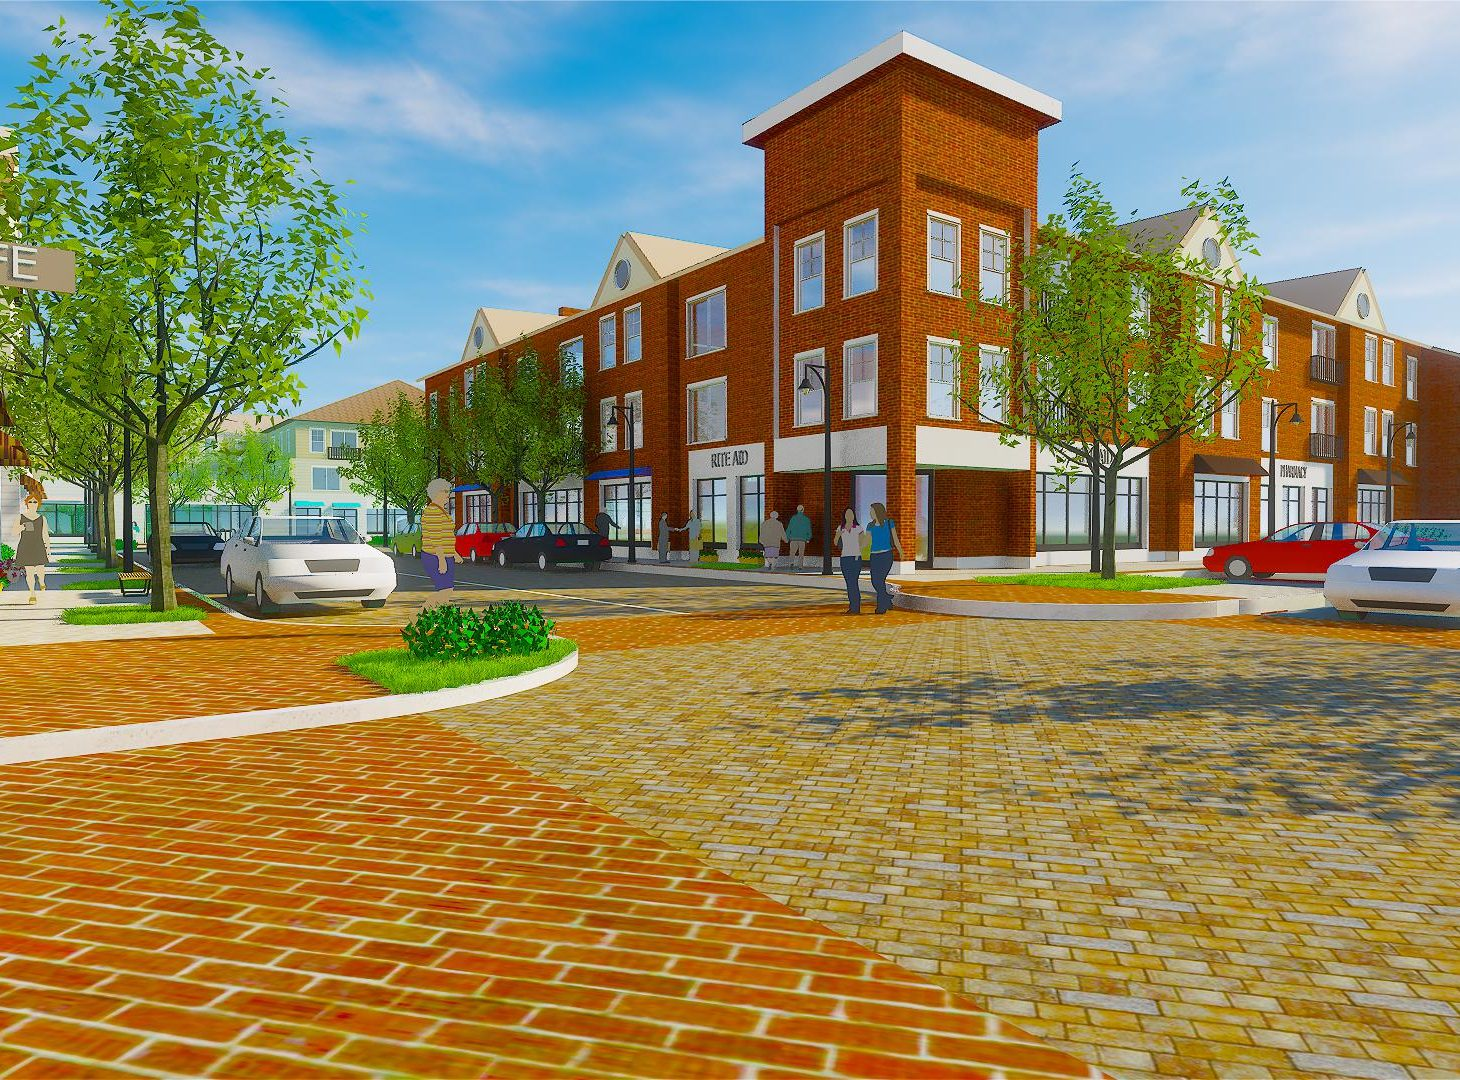 Durham Mill Plaza architectural rendering - central building from the street